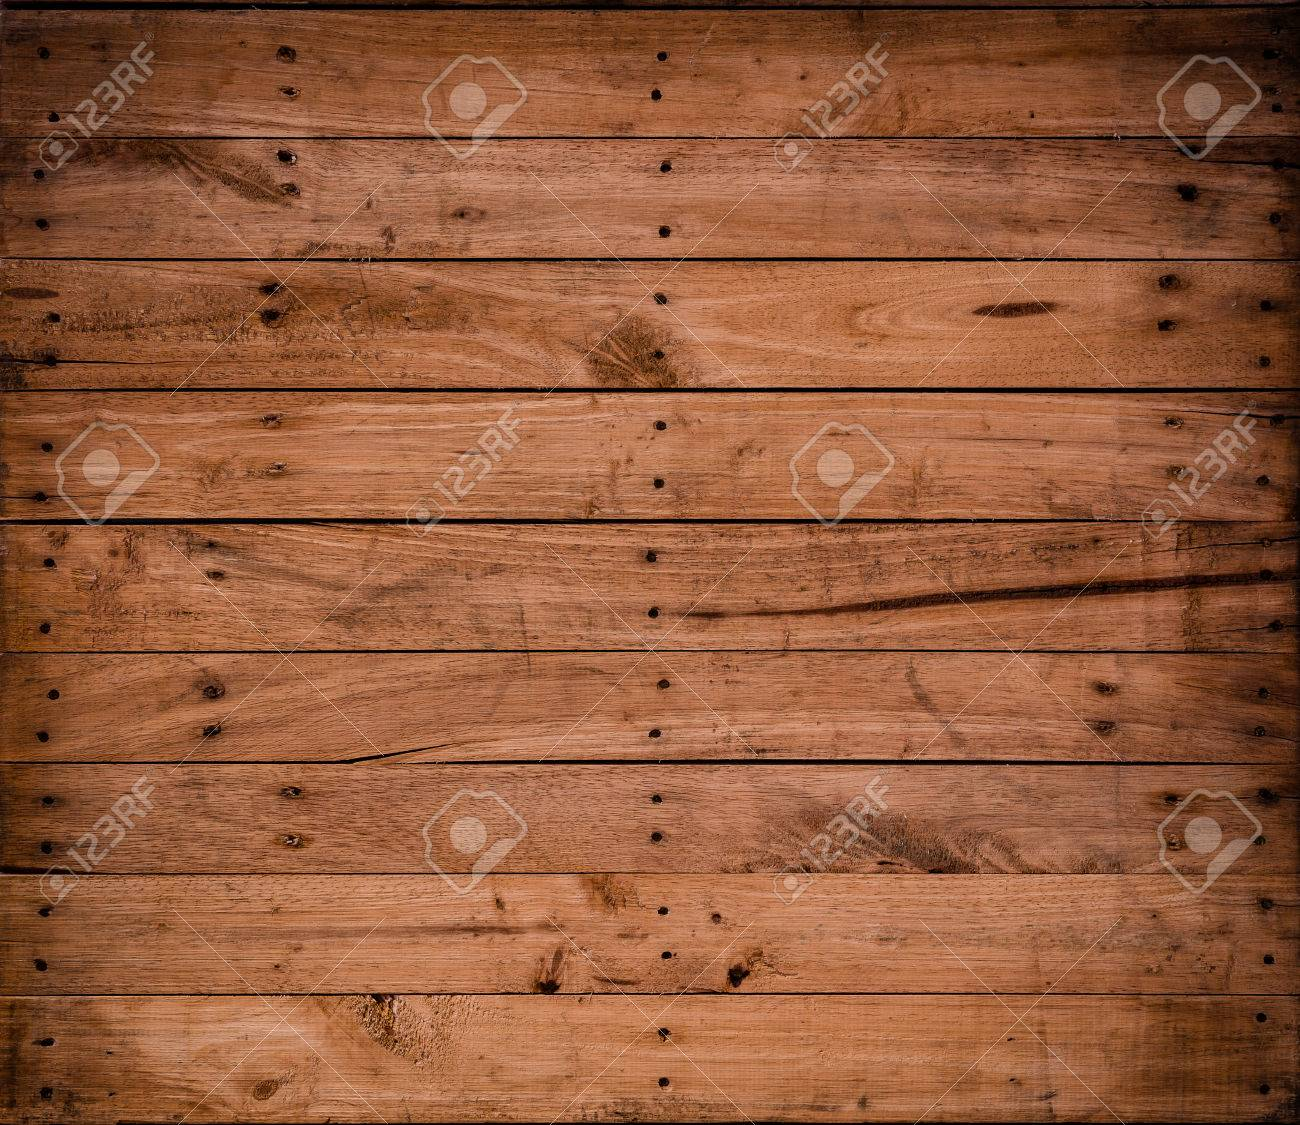 Wood furniture texture - Brown Color Nature Pattern Detail Of Pine Wood Decorative Old Box Wall Texture Furniture Surface Stock